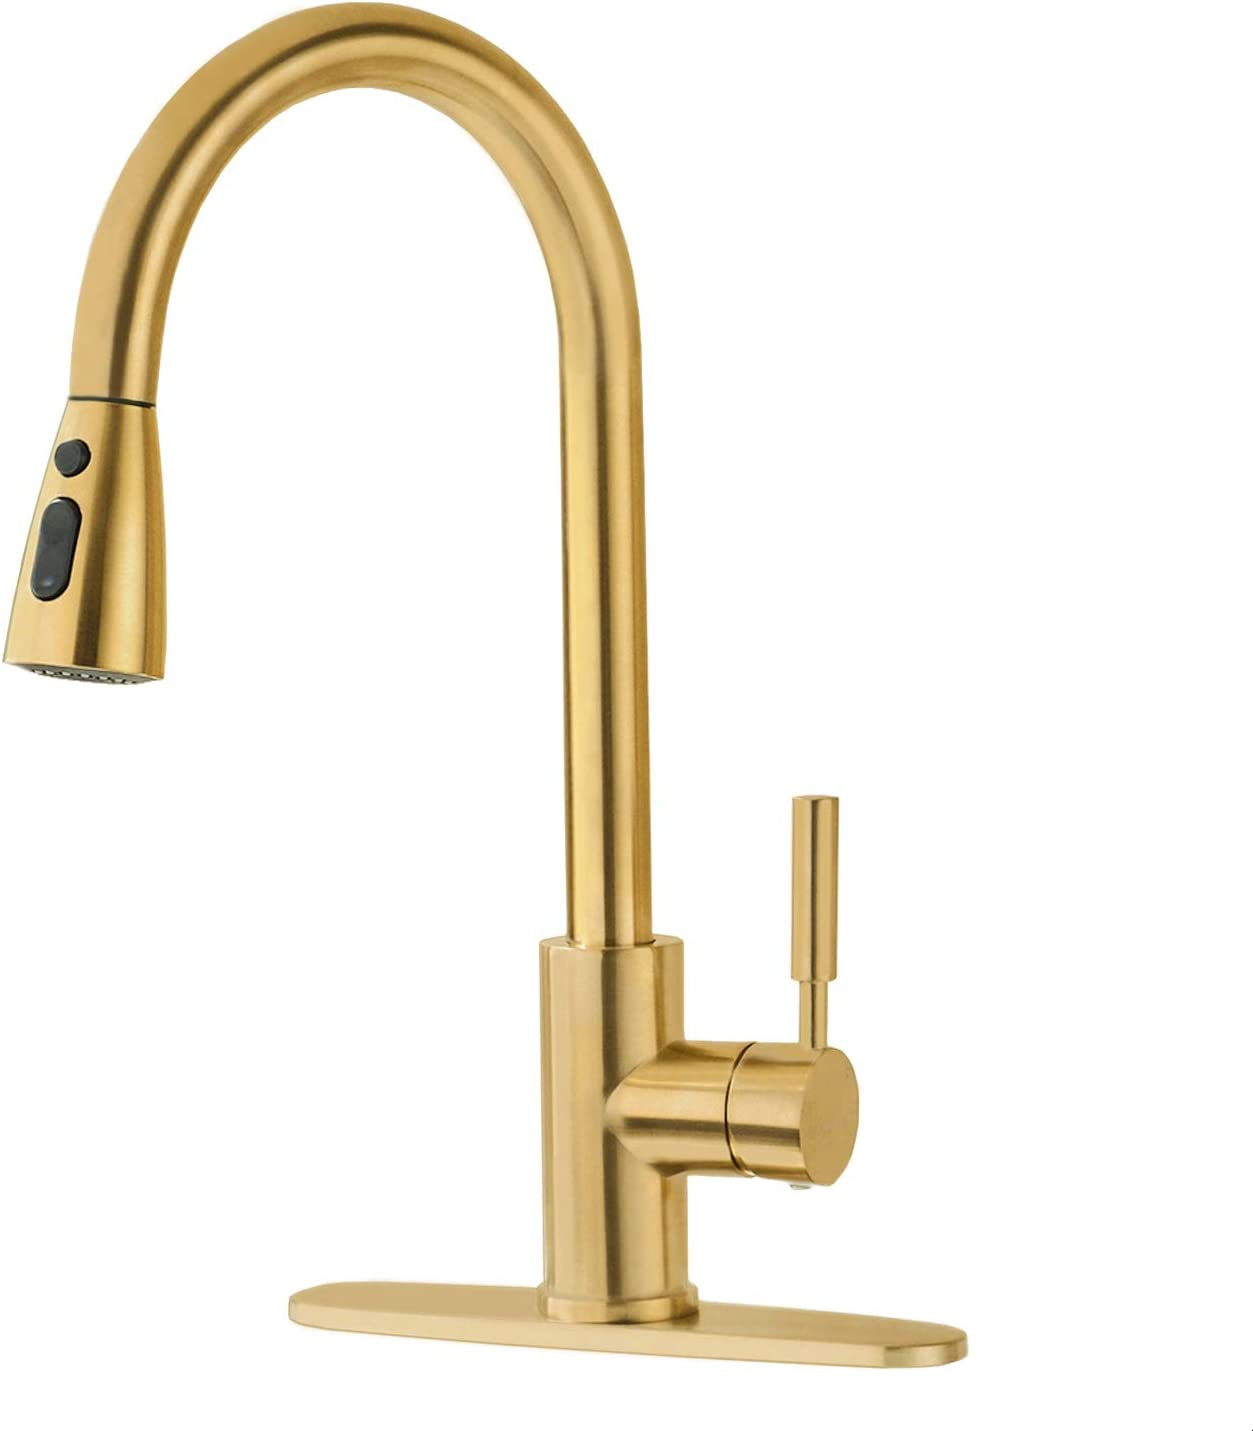 Fonveth Kitchen Faucet Brushed Gold Kitchen Faucet With Pull Down Sprayer Single Handle High Arc Pull Out Kitchen Sink Faucet Single Hole Kitchen Faucet With Deck Plate Upgrade Brushed Brass Amazon Com